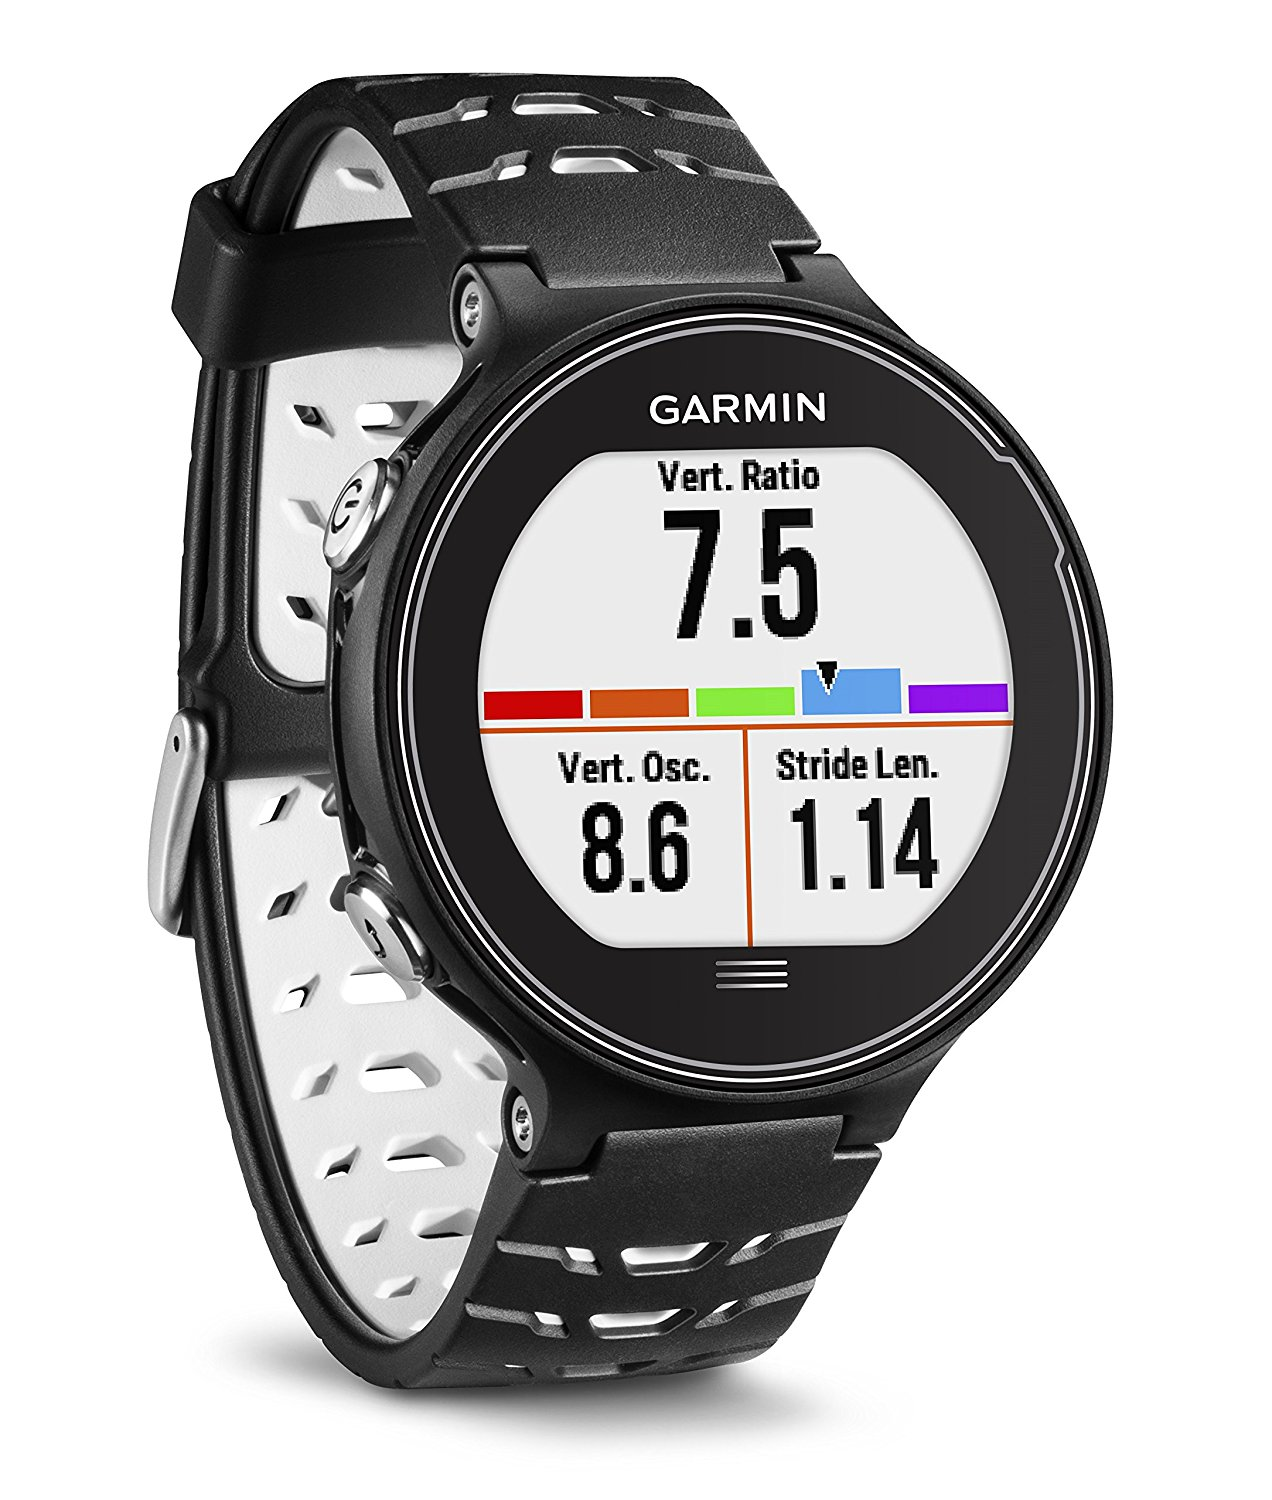 montre garmin avis et comparatif sur les montres garmin. Black Bedroom Furniture Sets. Home Design Ideas